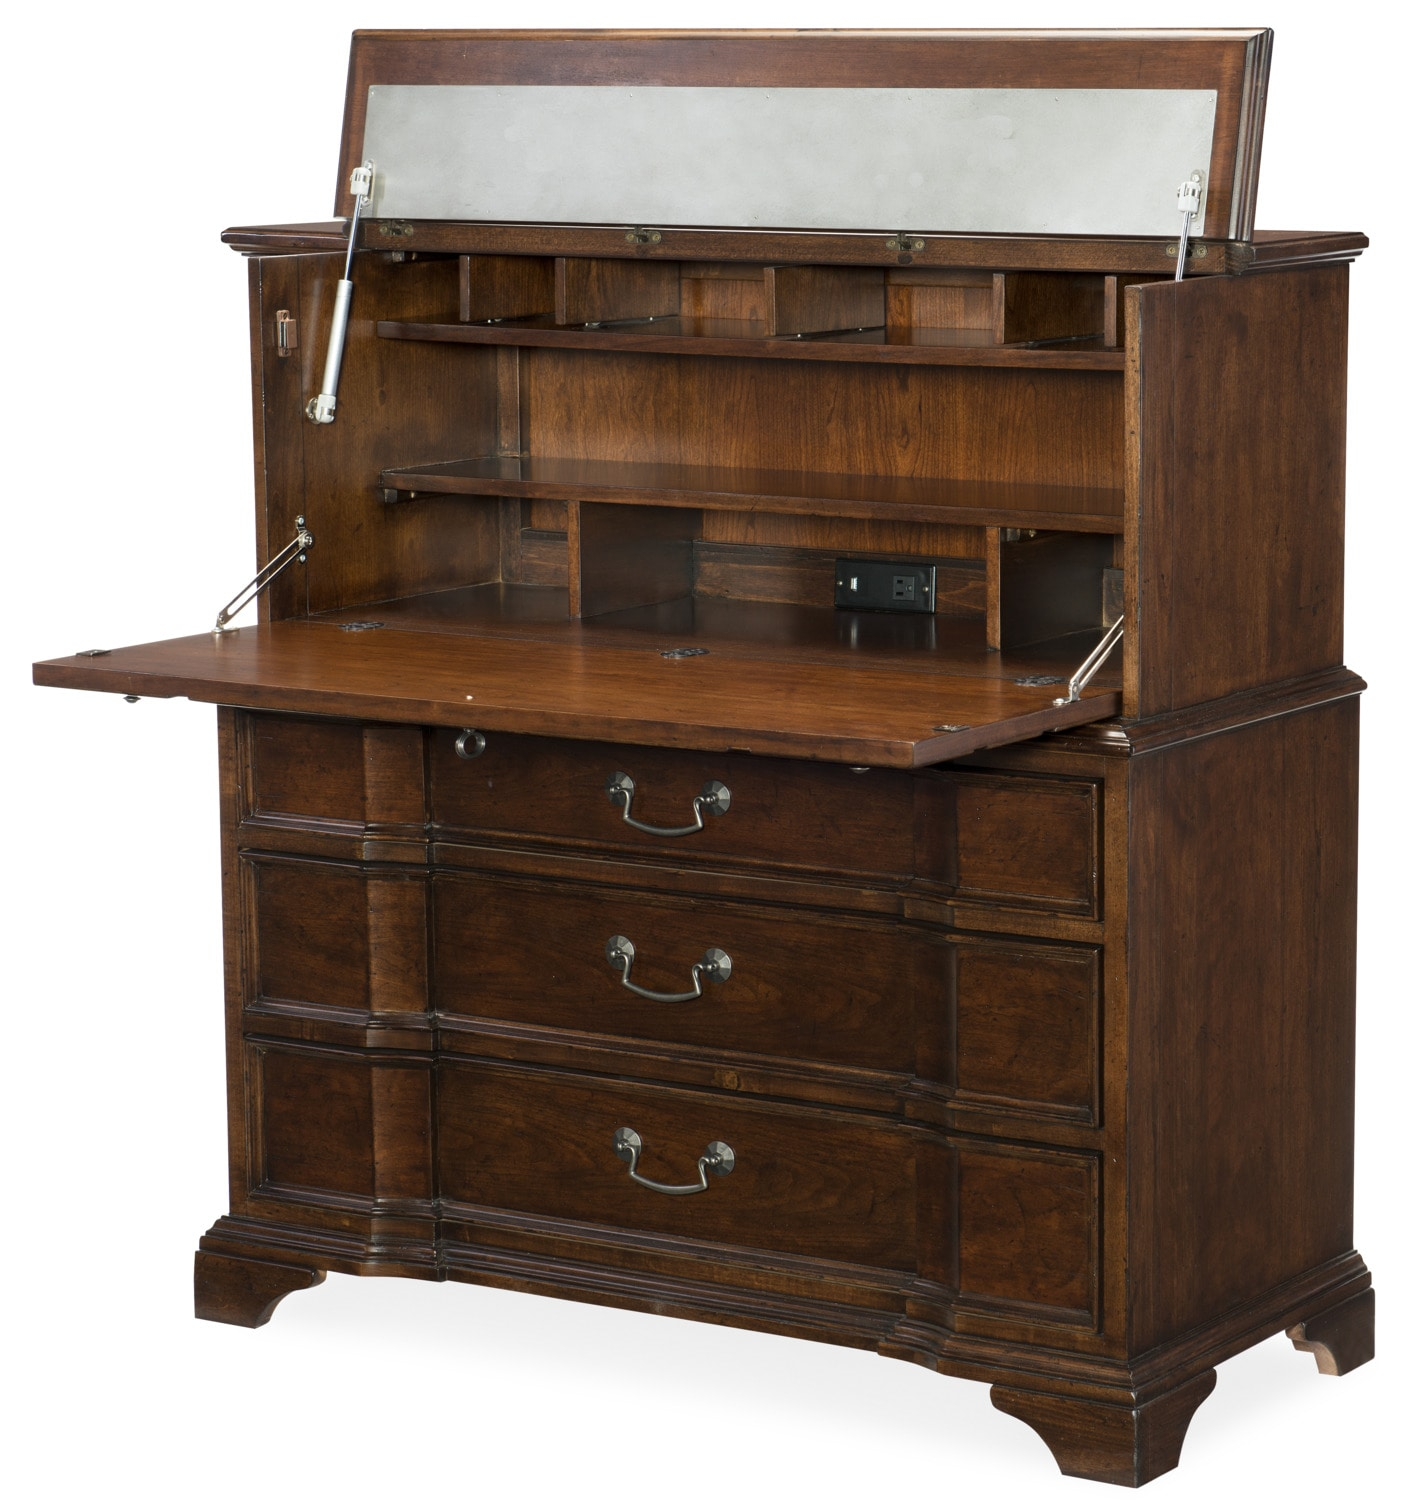 Home Office Furniture - Rachael Ray Upstate Home Office Chest  - Cherry